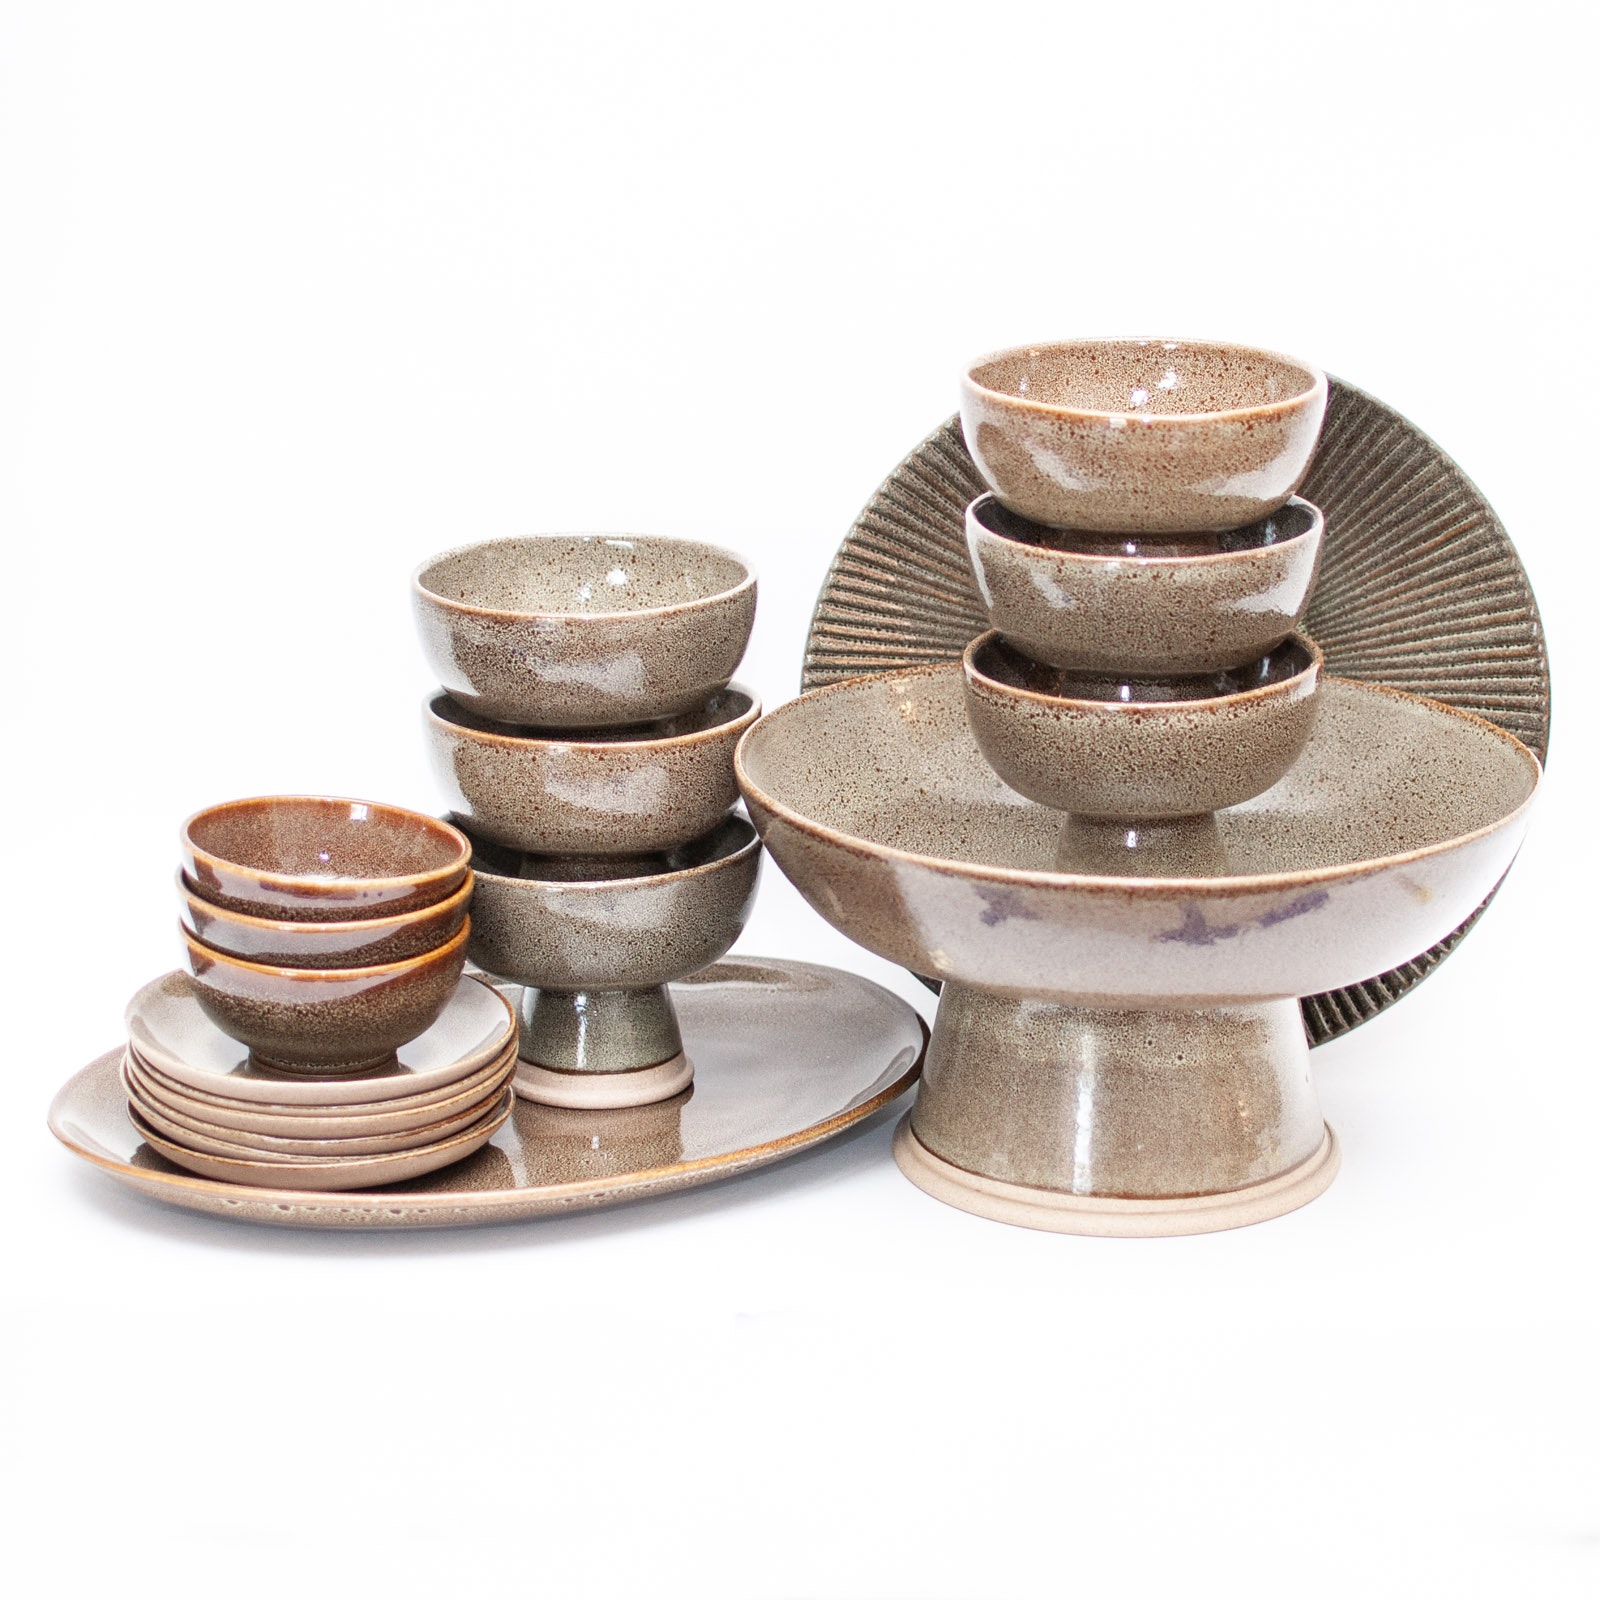 Wheel Thrown Stoneware and Porcelain Rice Bowl Serving Set